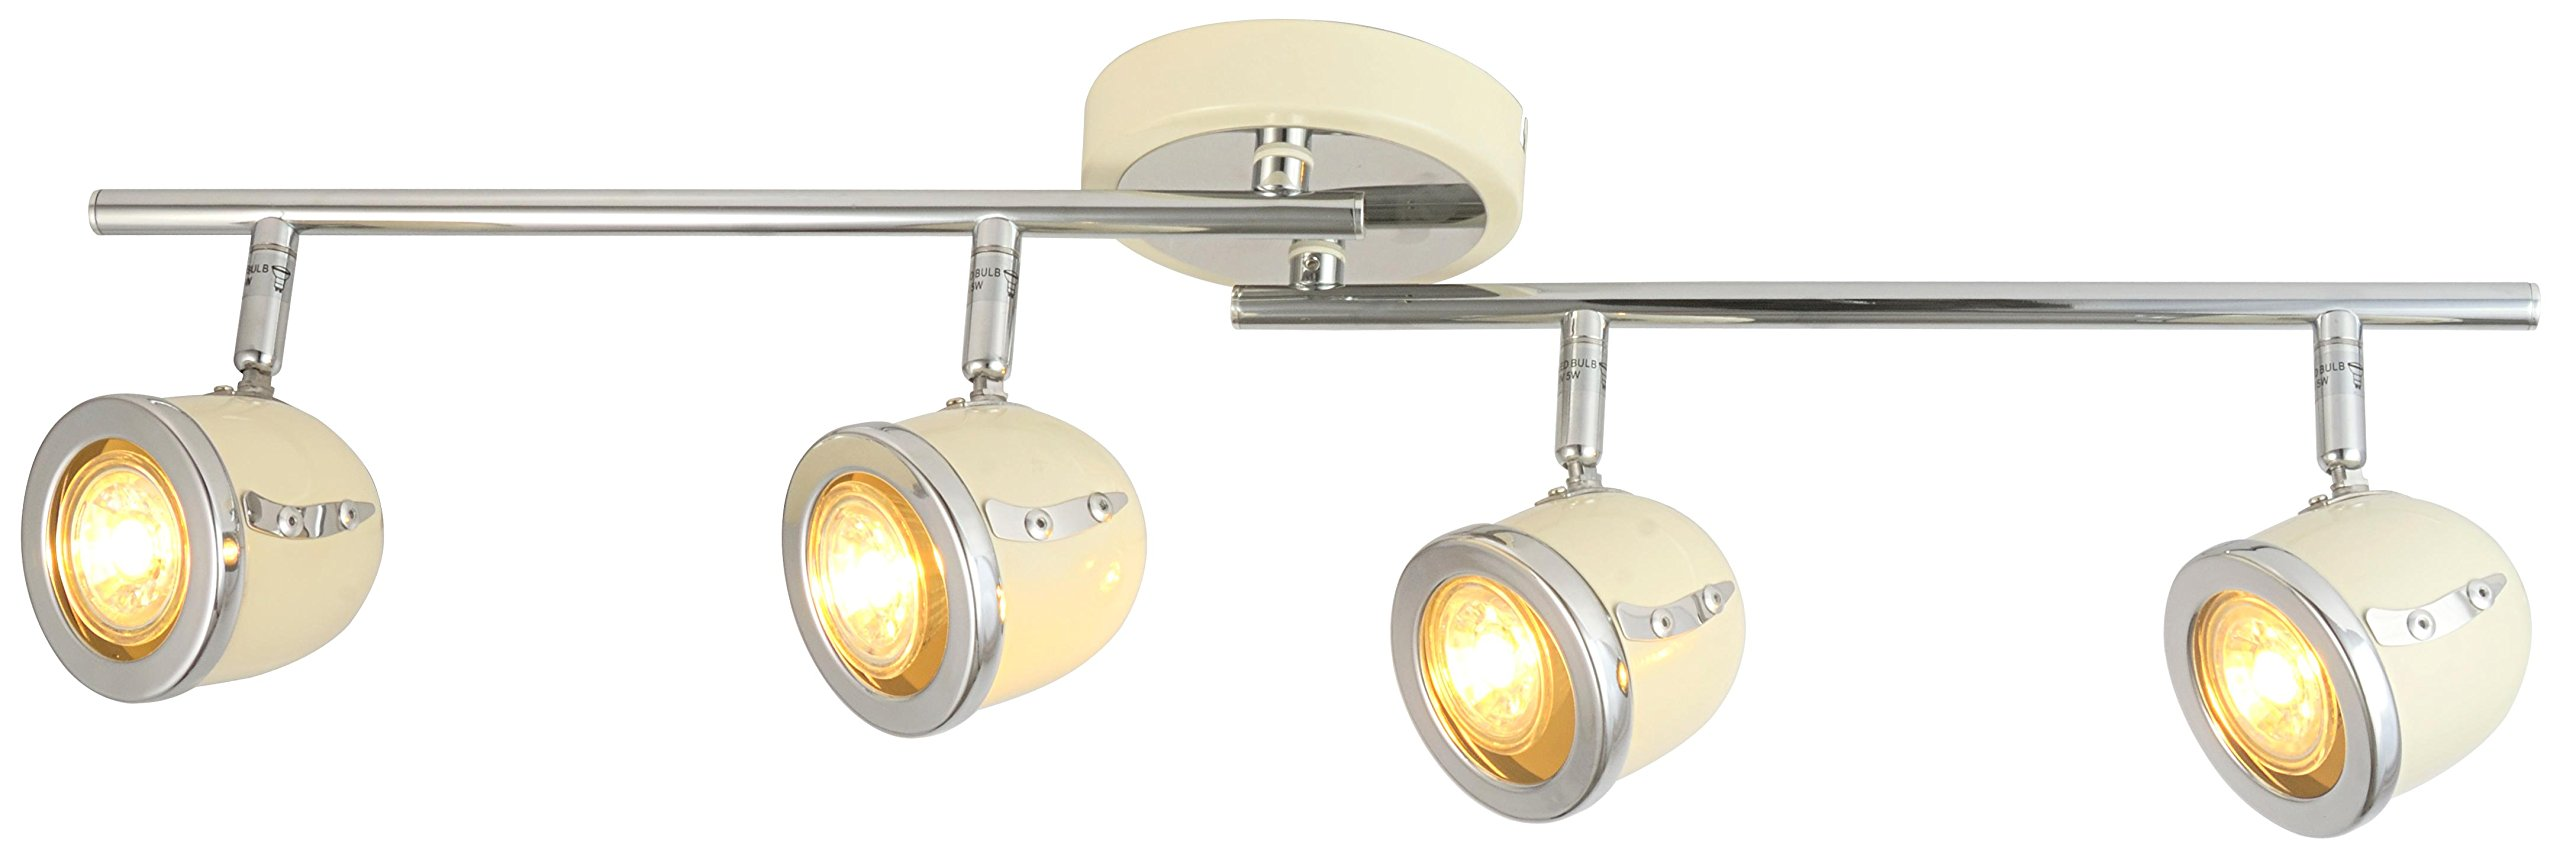 LED Retro Adjustable Eyeball Black &Chrome Ceiling Spotlight (Beige & Chrome, 4 Lights)